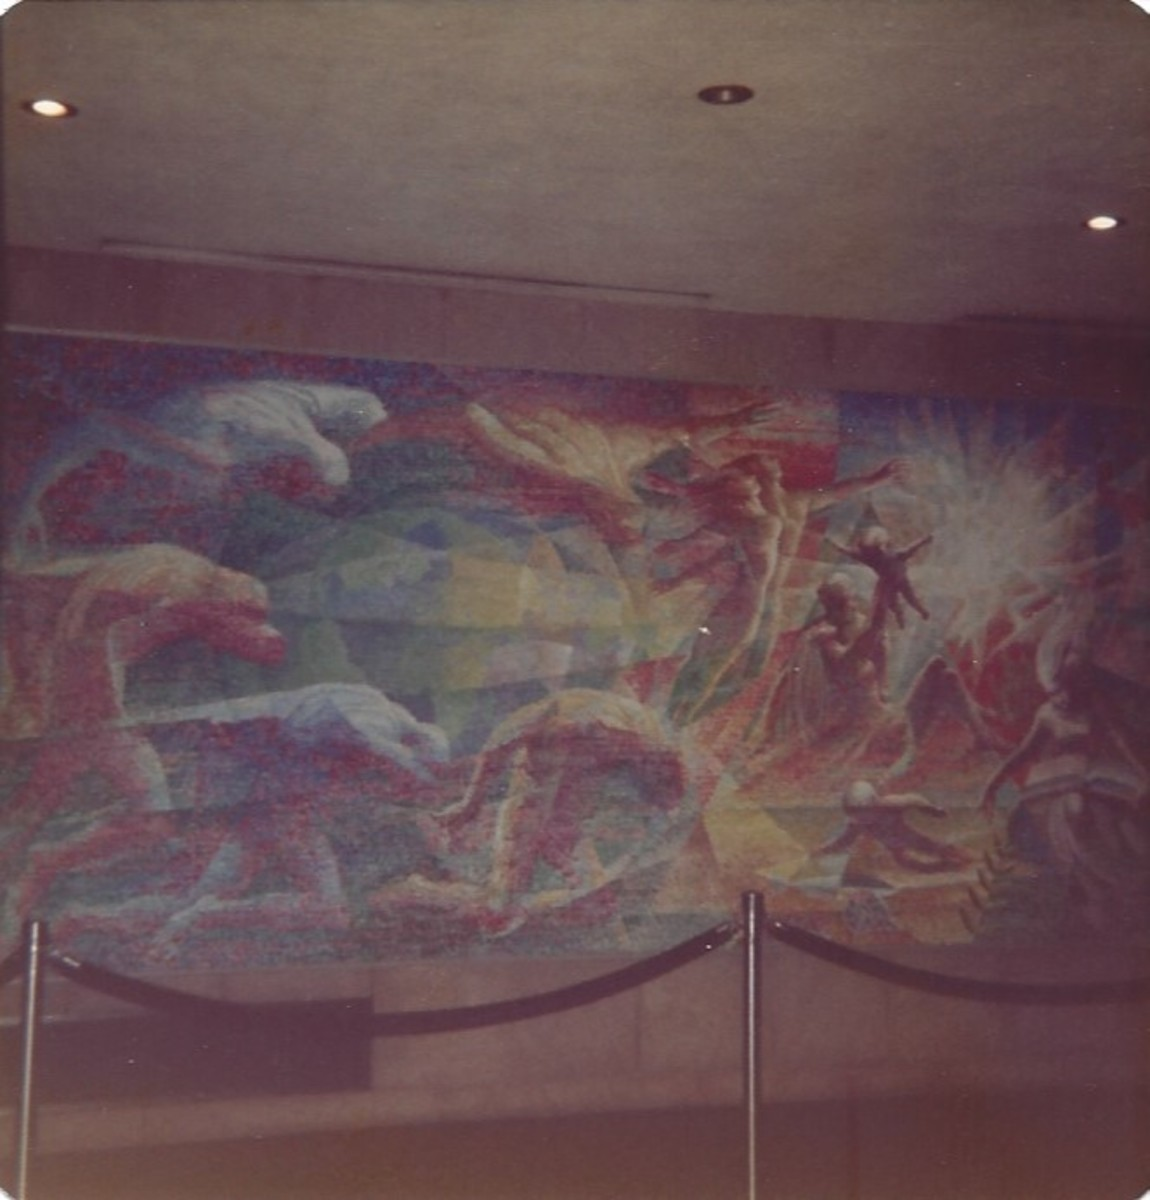 Painting inside the United States Building, New York  Technically the UN is not part of the United States.